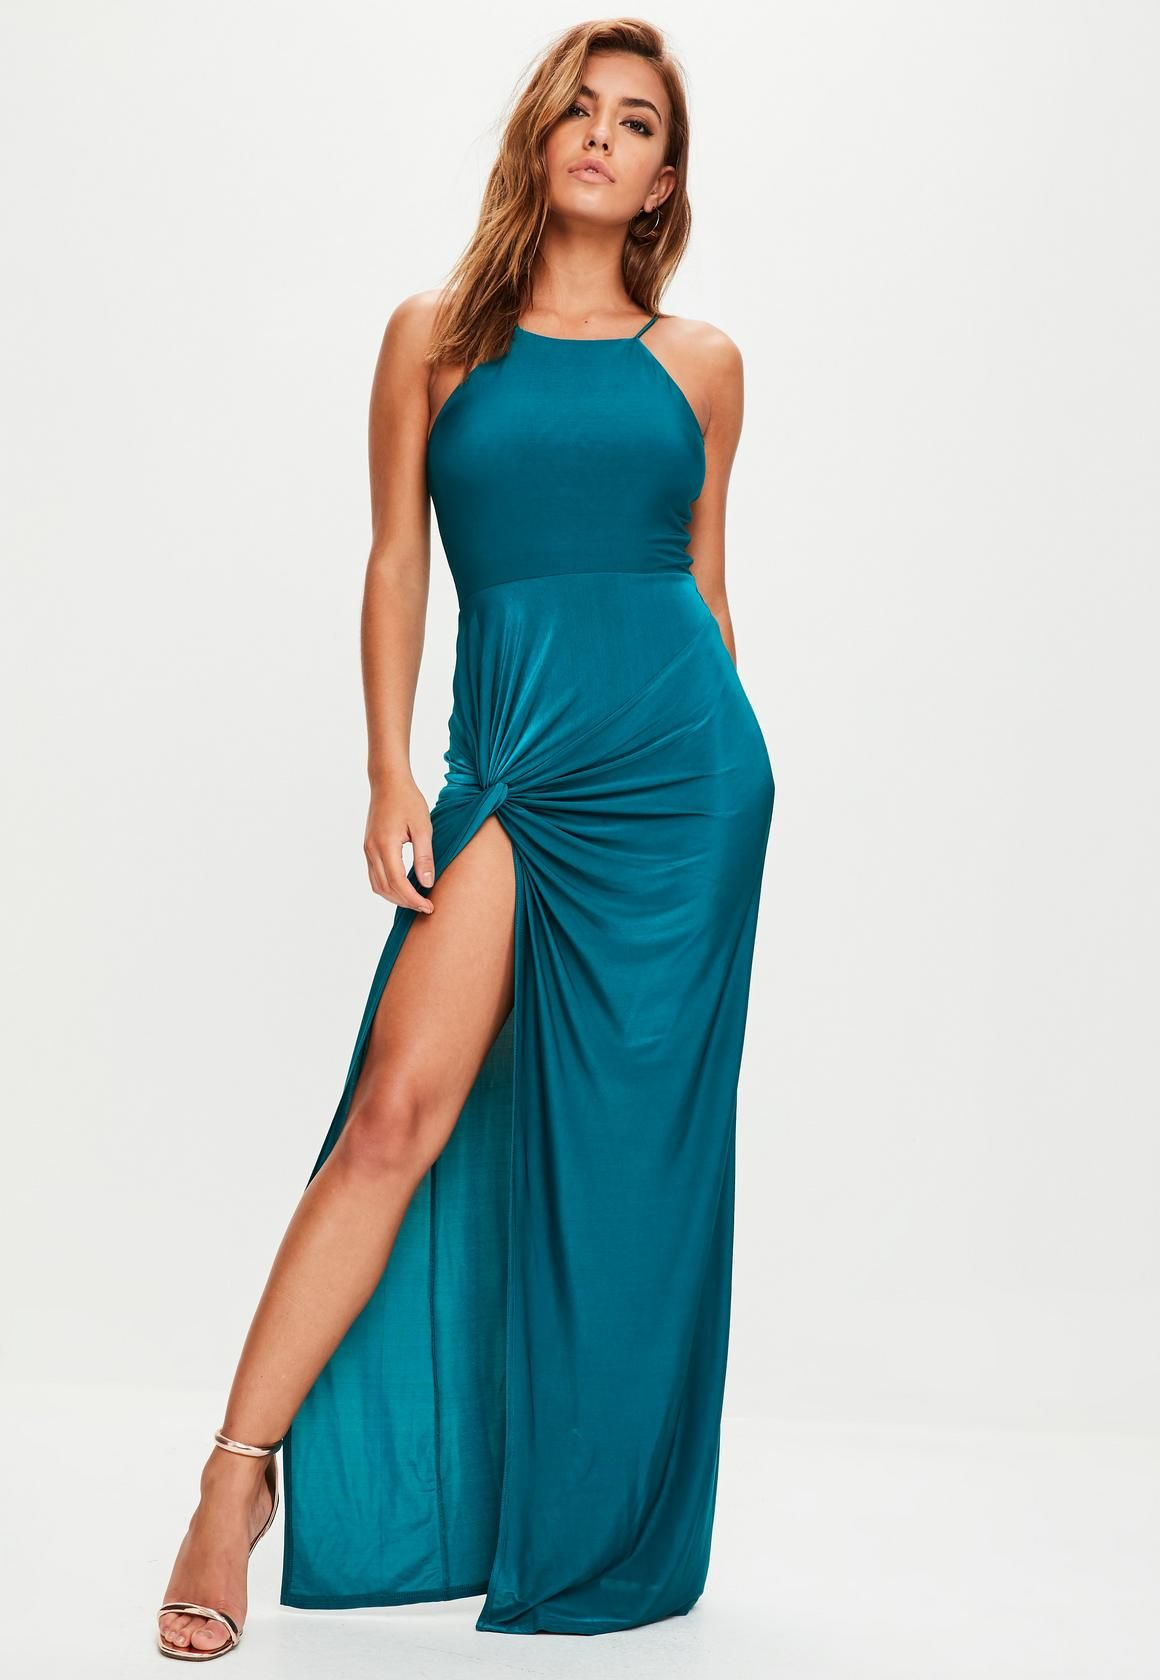 7c5ddf1c82 Missguided - Teal Blue Slinky Maxi Dress | Photoshoot on Jetty ...